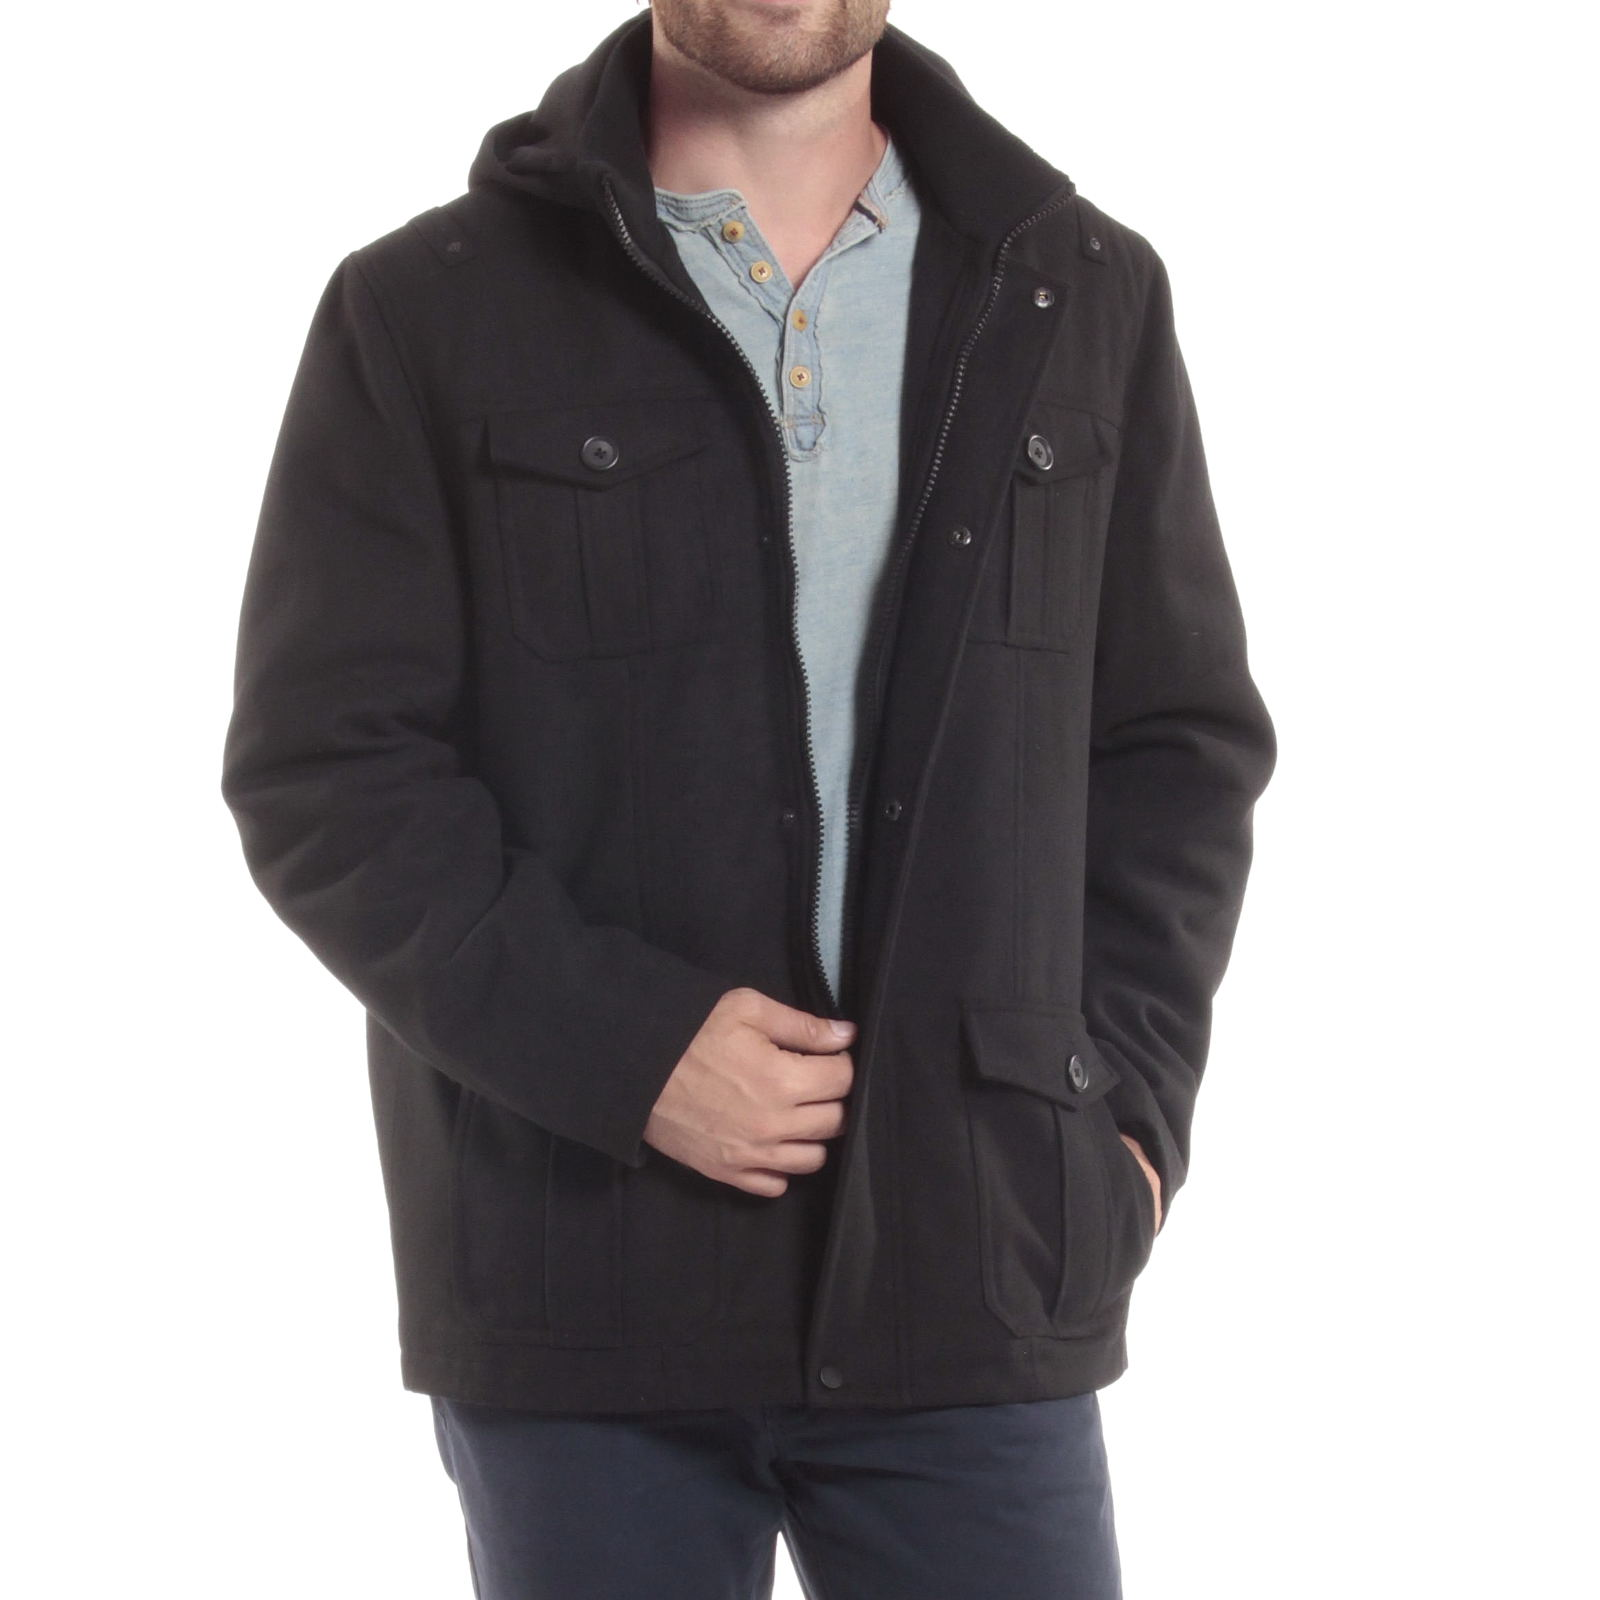 Alpine-Swiss-Noah-Mens-Wool-Coat-Parka-with-Removable-Hood-Jacket-Cargo-Pockets thumbnail 19